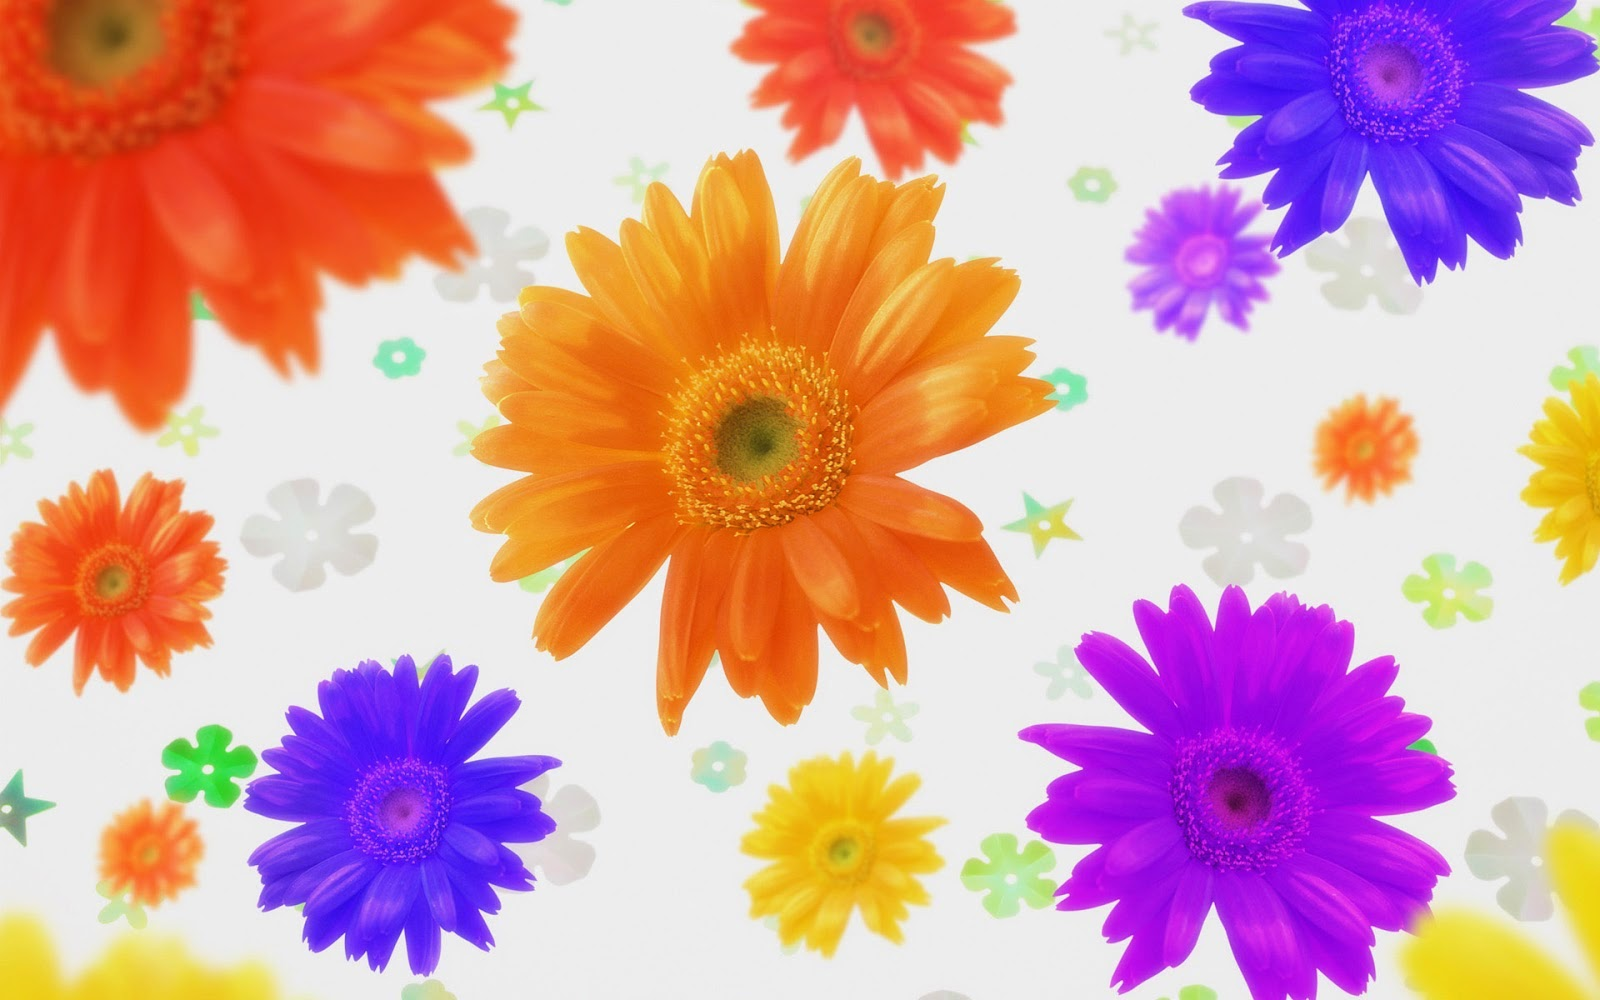 ��� � ������ ���� ����� ����� , ���� ��� ������������ 2016 hd , Pictures of flowers 2015_1410136910_566.